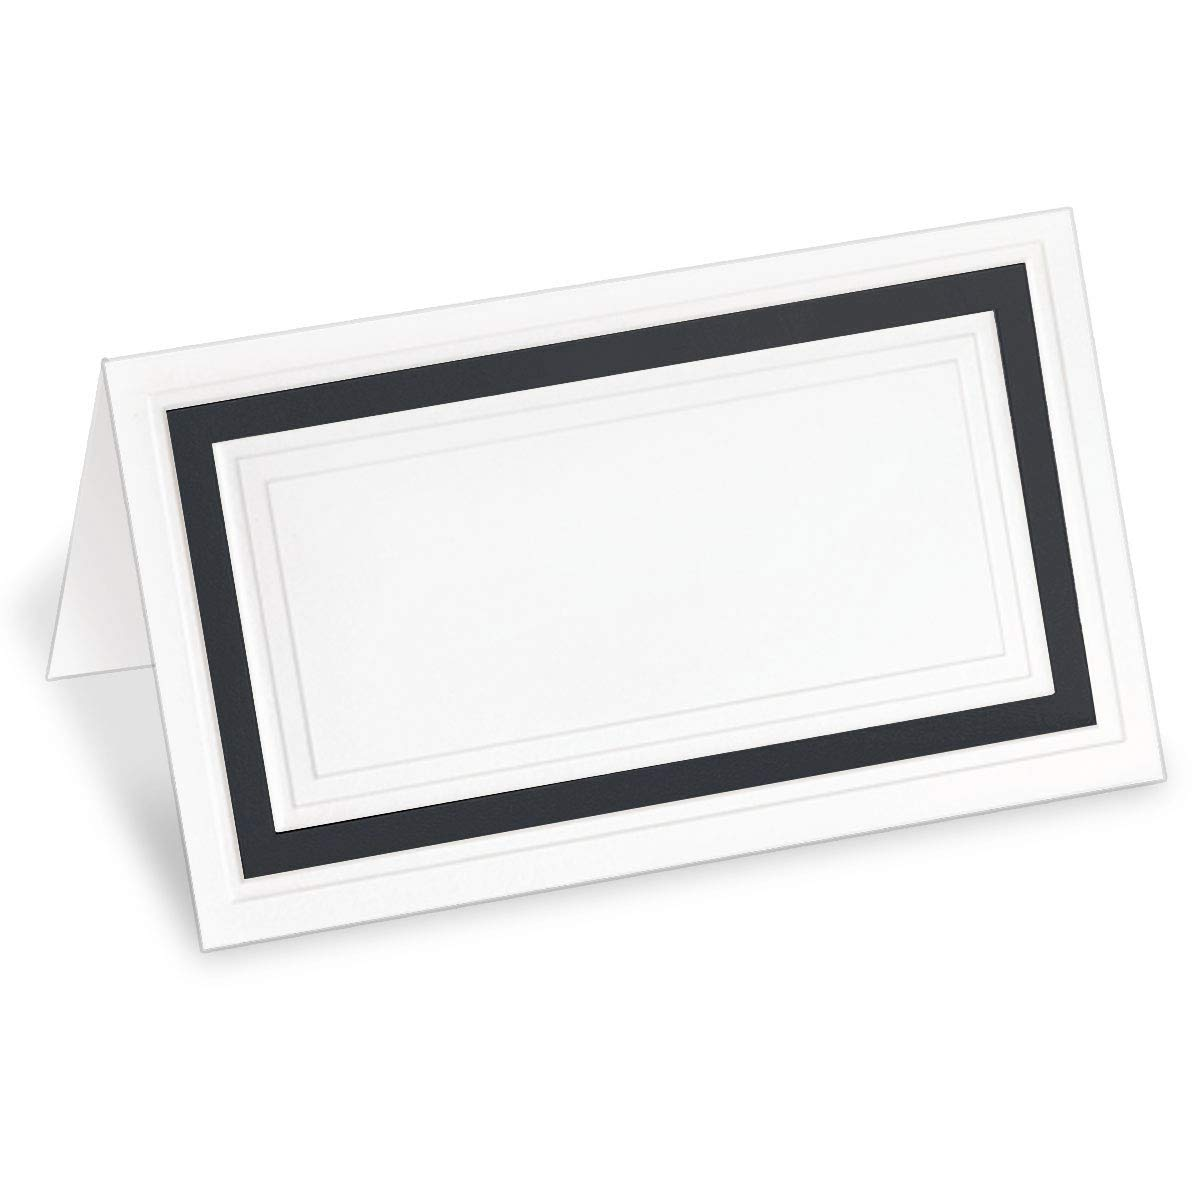 PaperDirect White 38lb Cover Stock Folded Place Cards with Black Foil Border, Micro-Perforated, 2'' x 3 1/2'', 100/Pack, Laser and Inkjet Compatible